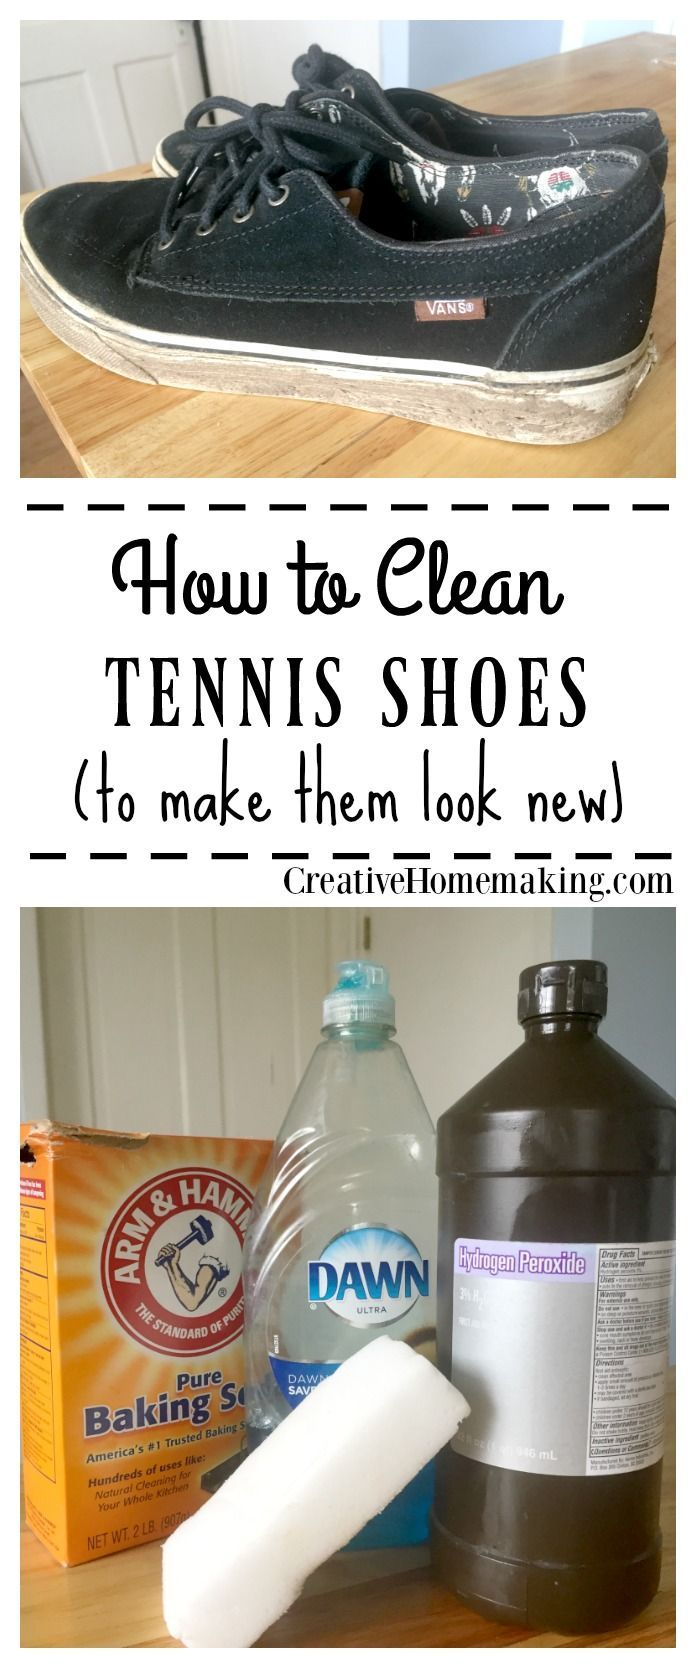 How to Clean Tennis Shoes | Clean